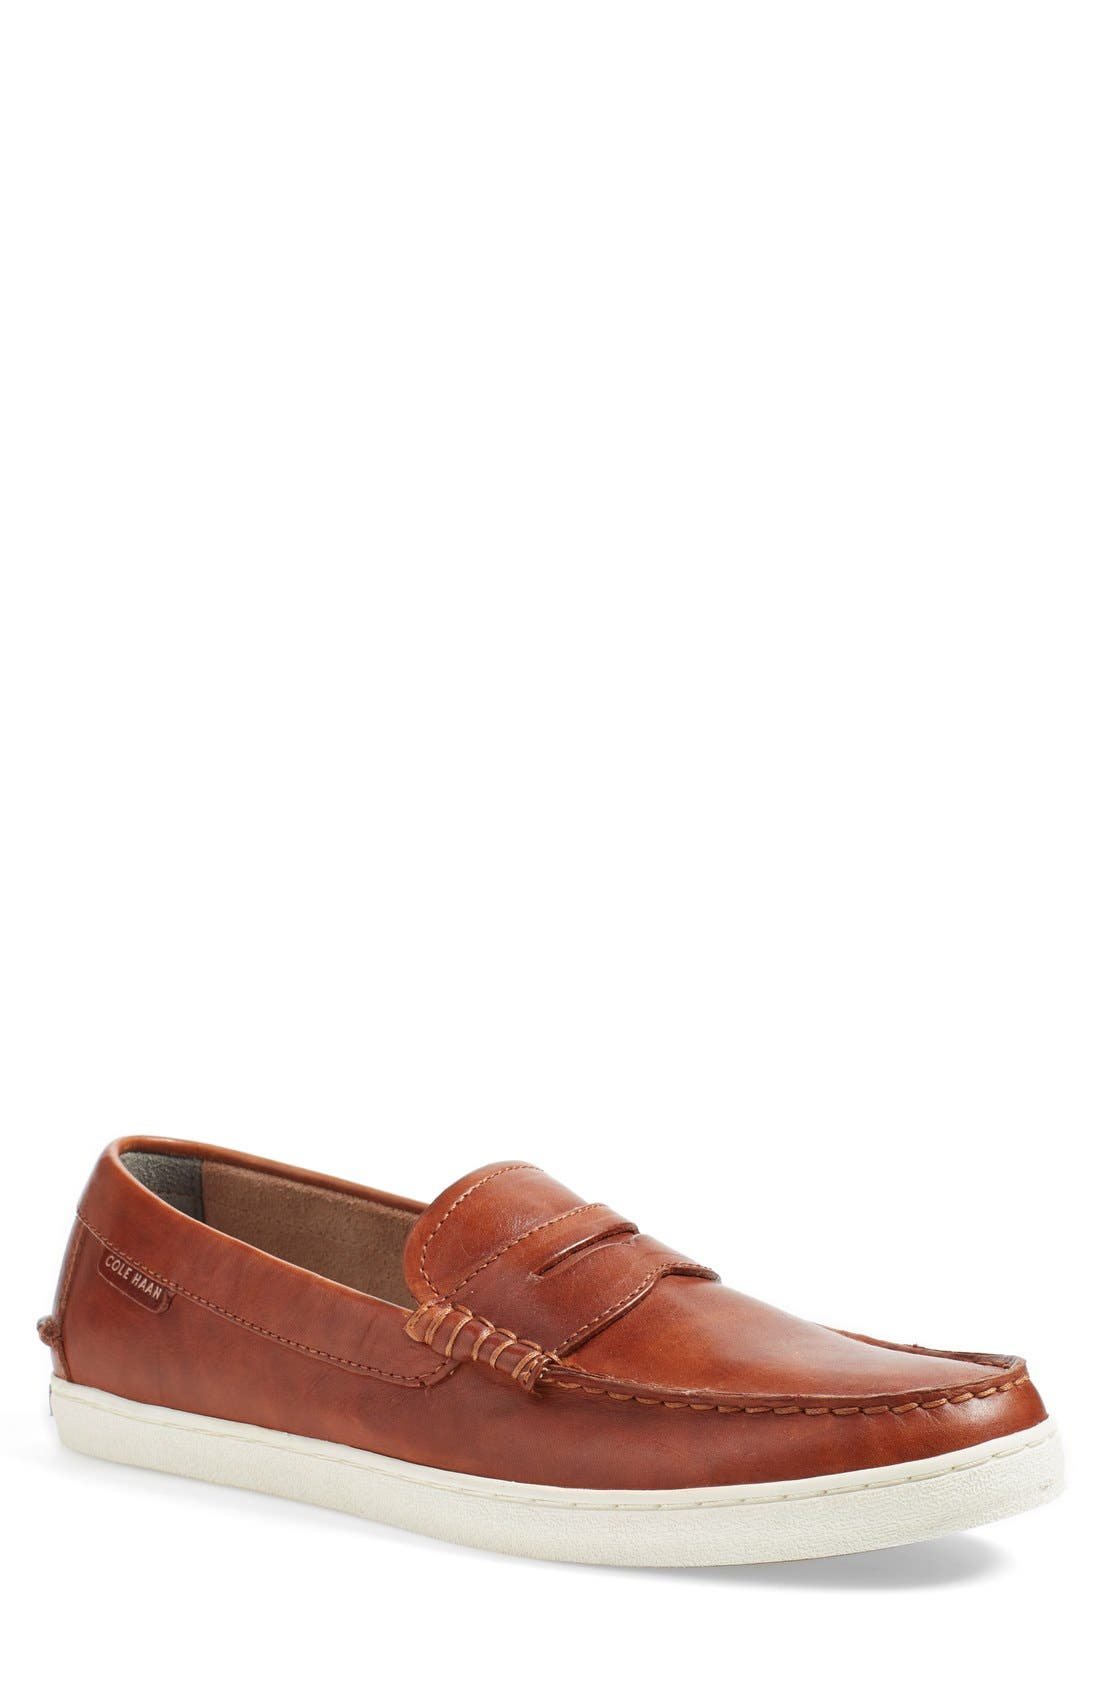 'Pinch' Penny Loafer,                         Main,                         color, BRITISH TAN ANTIQUE LEATHER